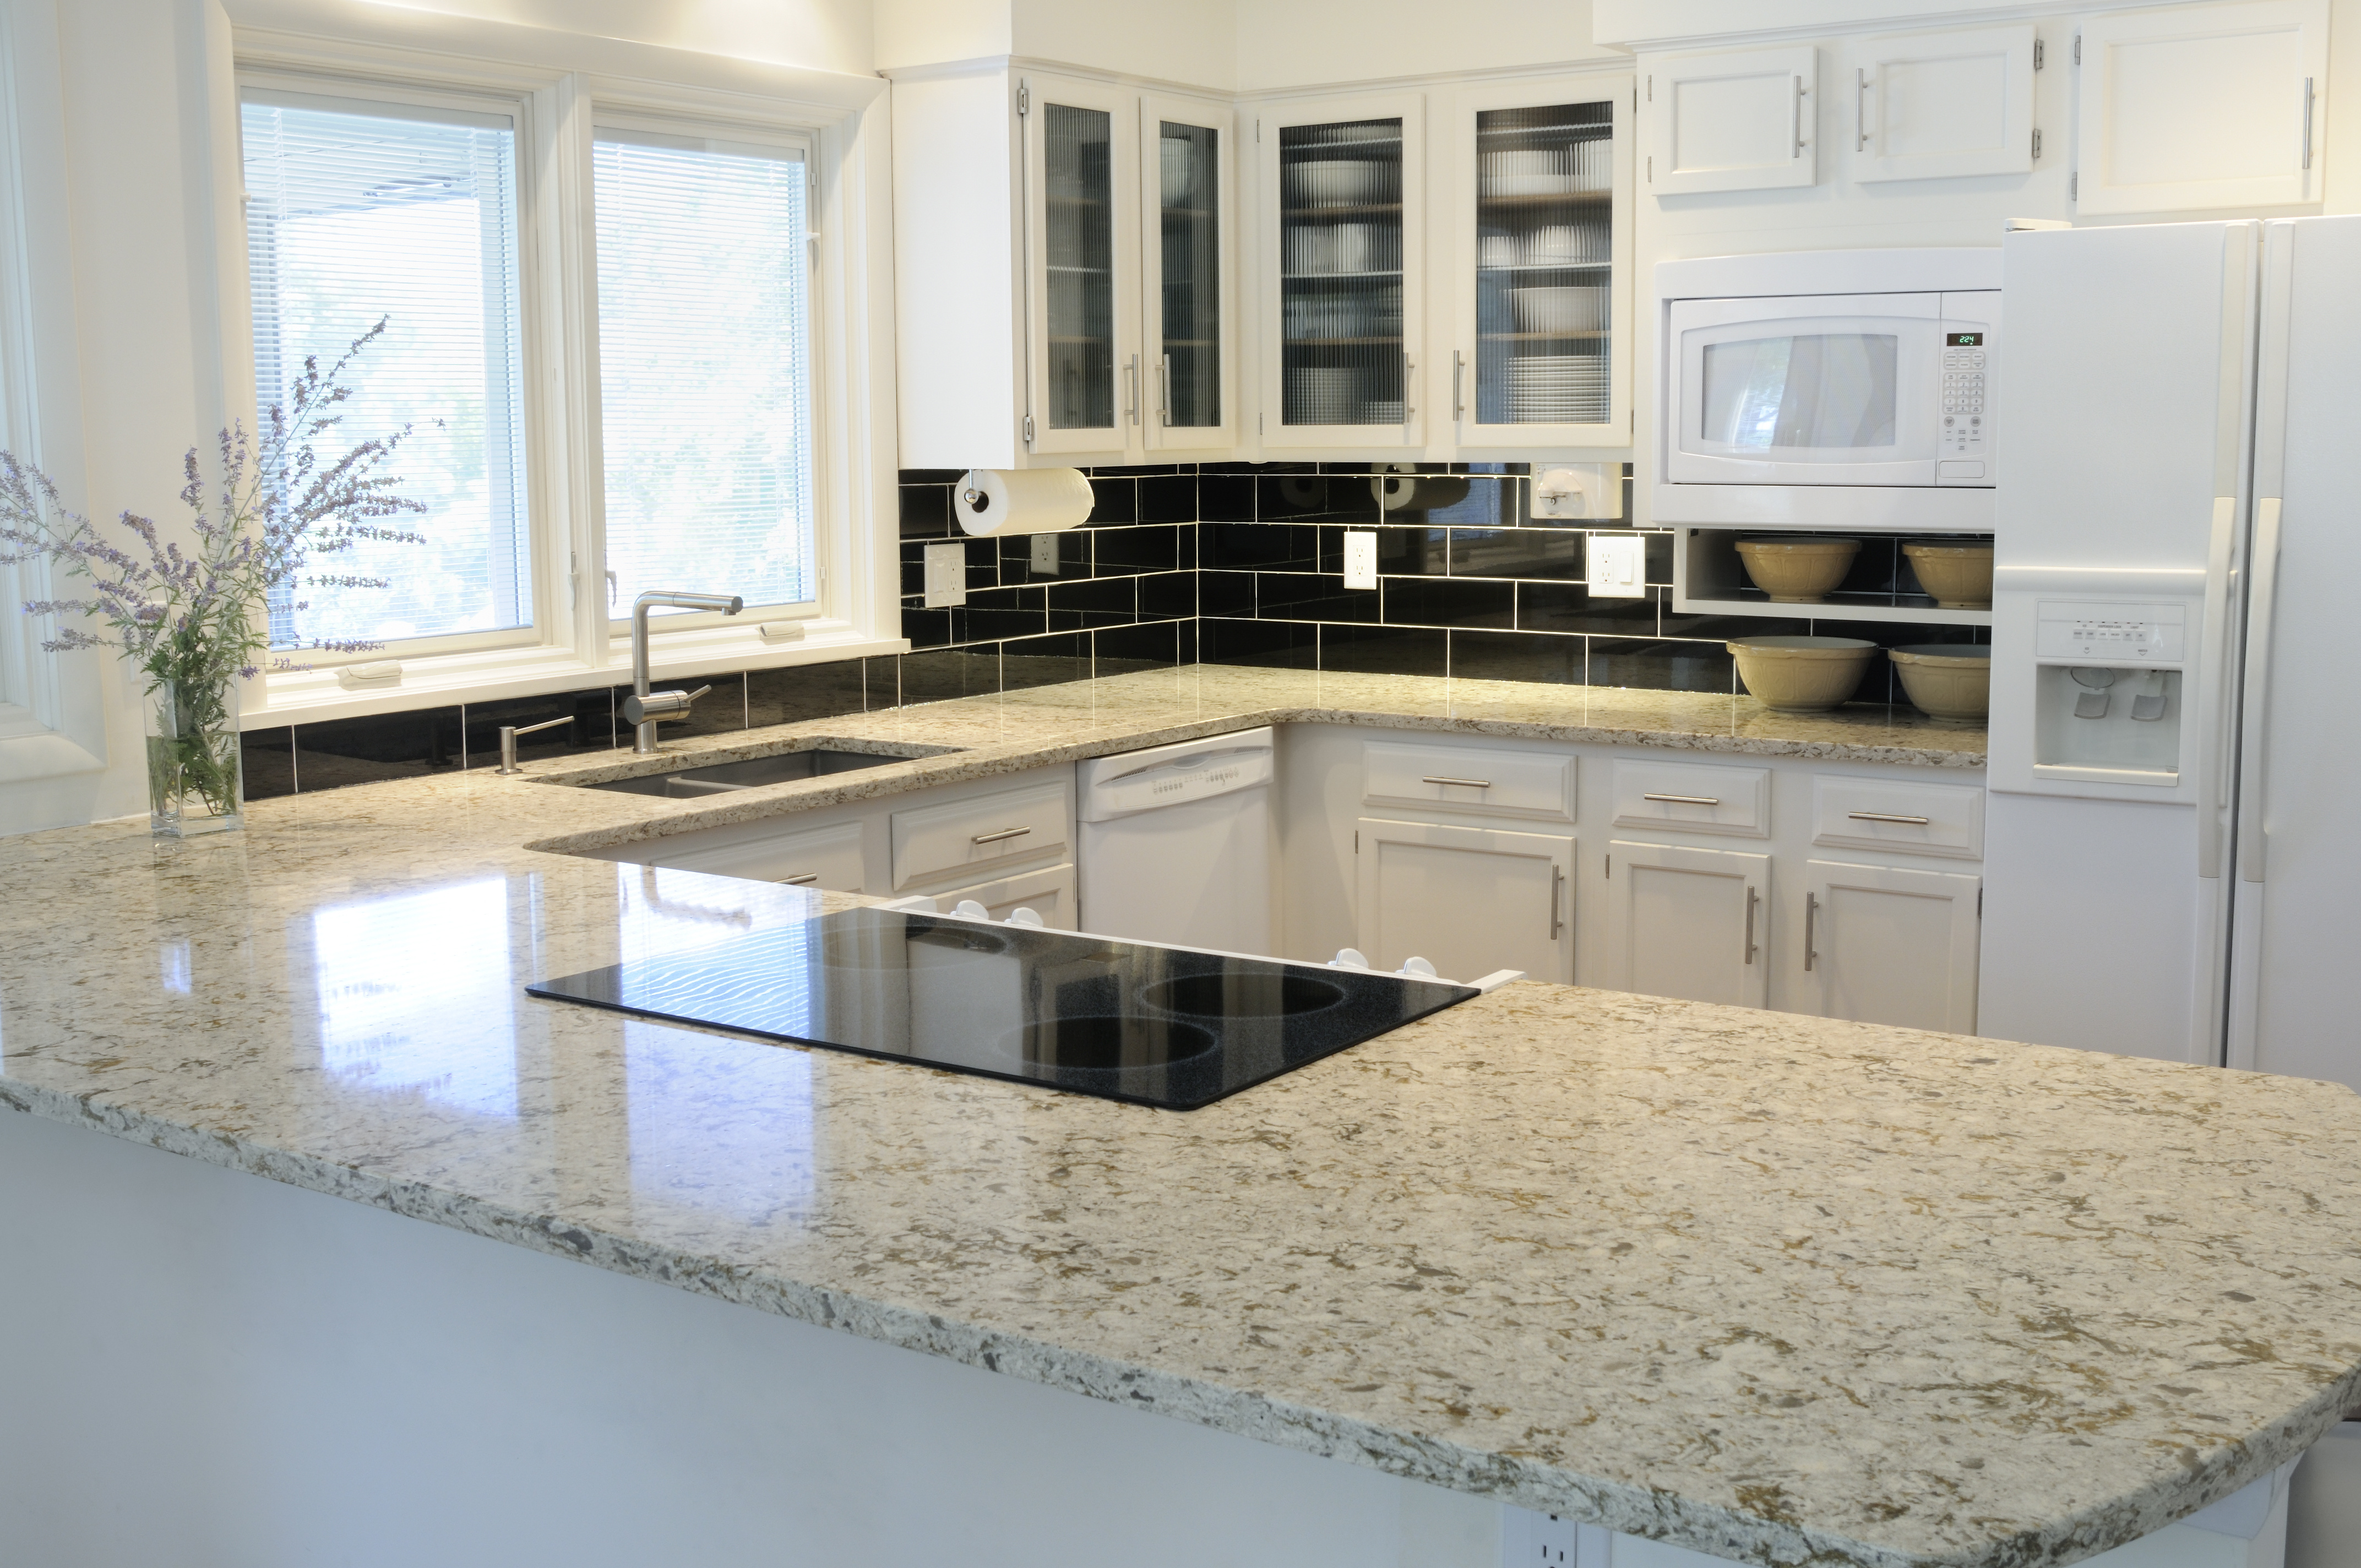 choosing material idea kitchen granite cheap of vanity home new countertop best white options tops countertops